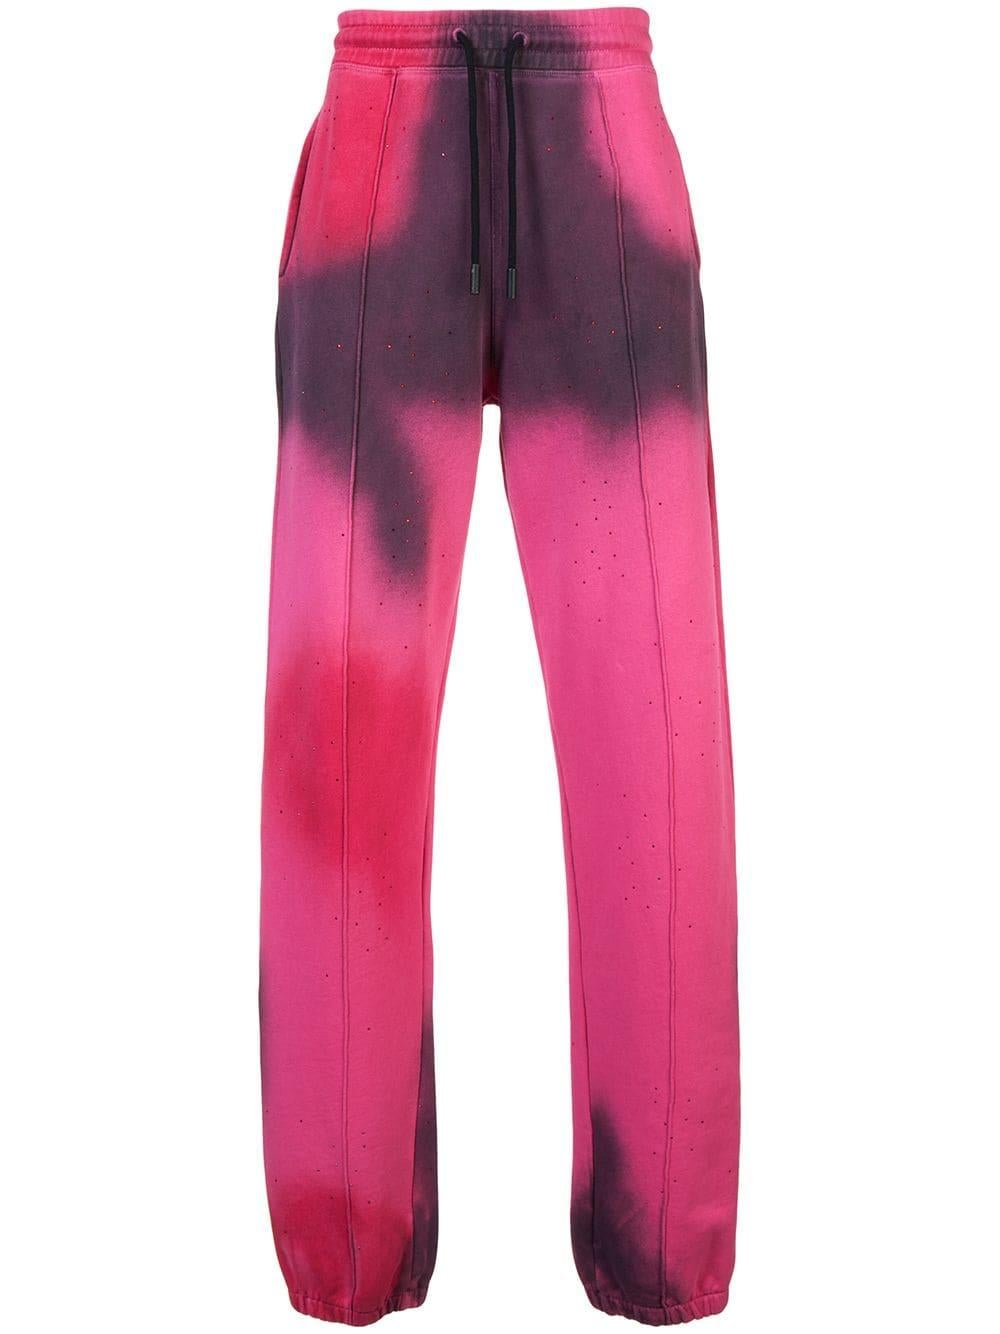 Image of OFF WHITE BRAND TIE DYE SWEATPANTS